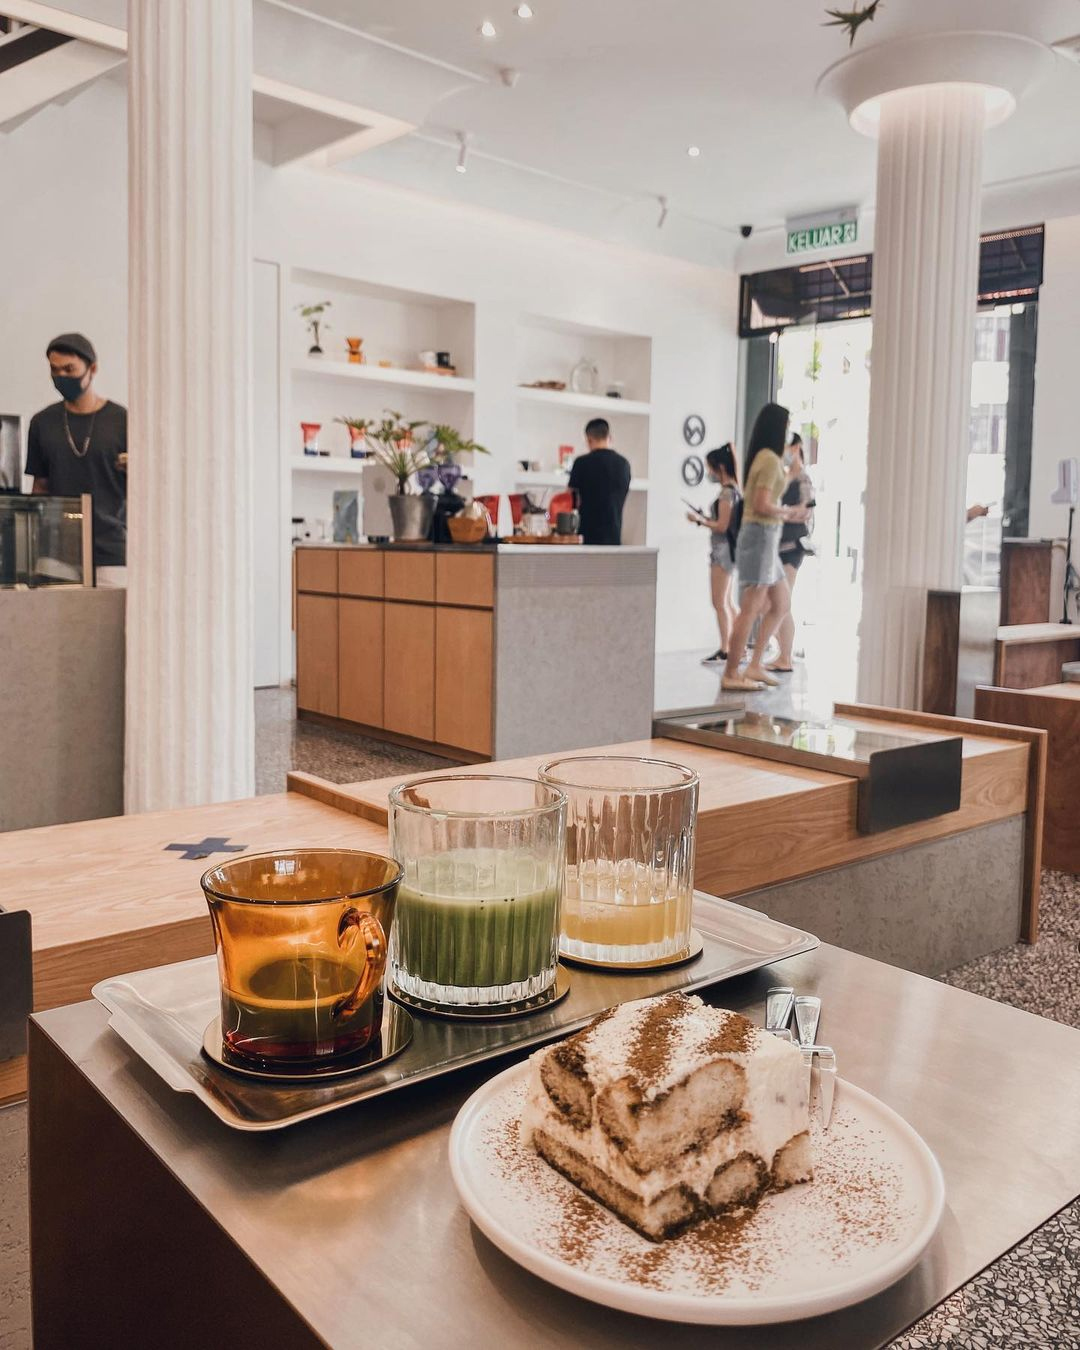 New cafes in Penang - Forest Cloud